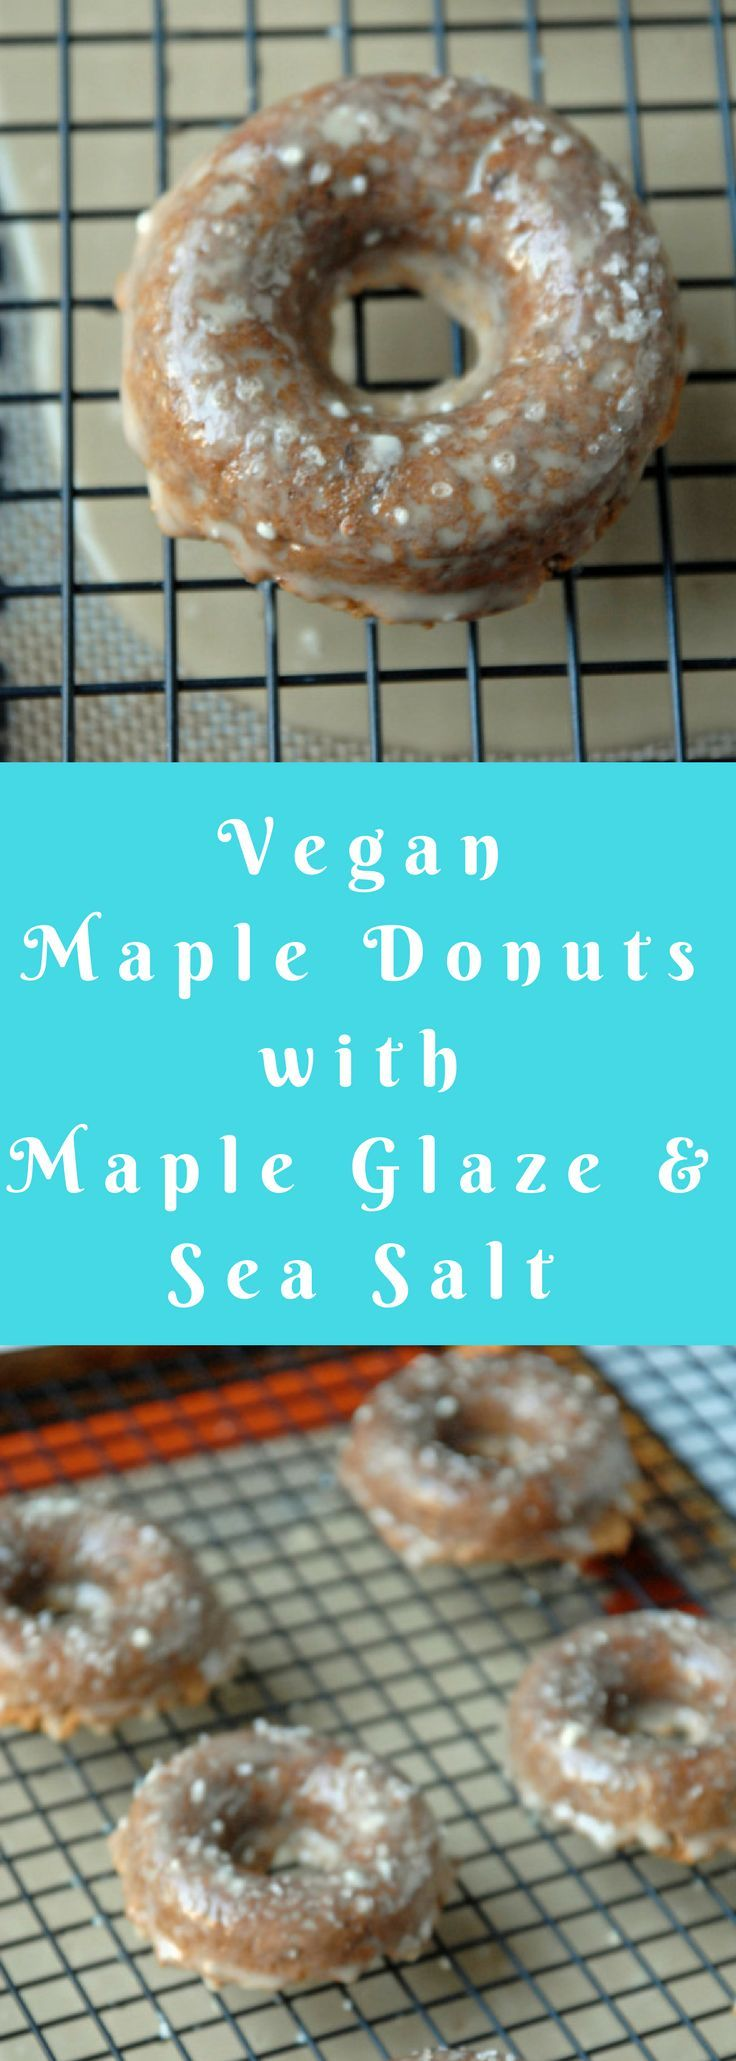 The sweet/salty combo in these vegan doughnuts I decided on trying out is perfectly matched.  Sometimes, maple-y things tend to be overly sweet, but the sea salt adds a nice balance to these, causing the sweetness to mellow out while still packing a sugary punch.